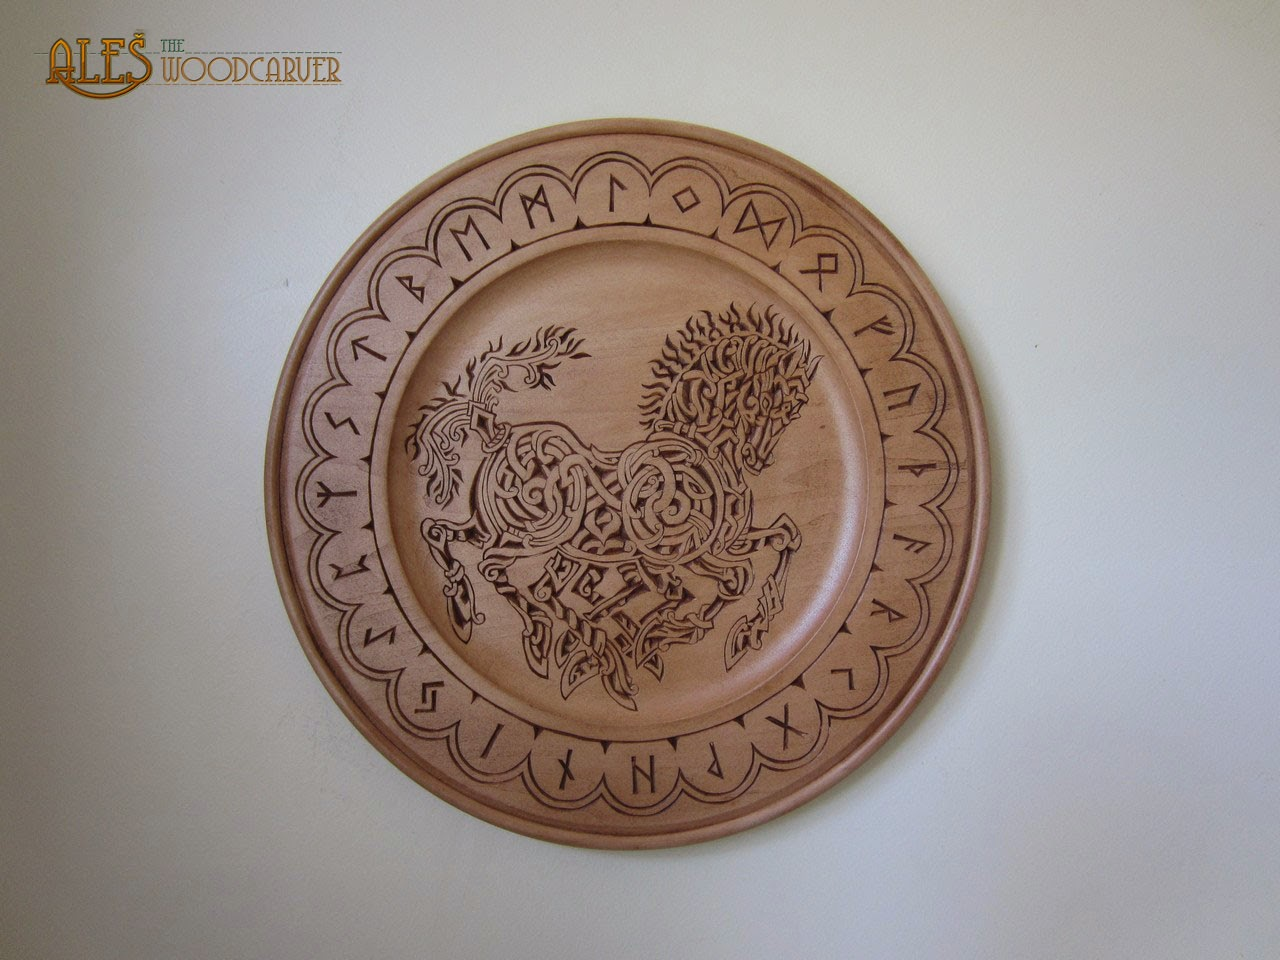 Ales the woodcarver sleipnir with futhark chip carving